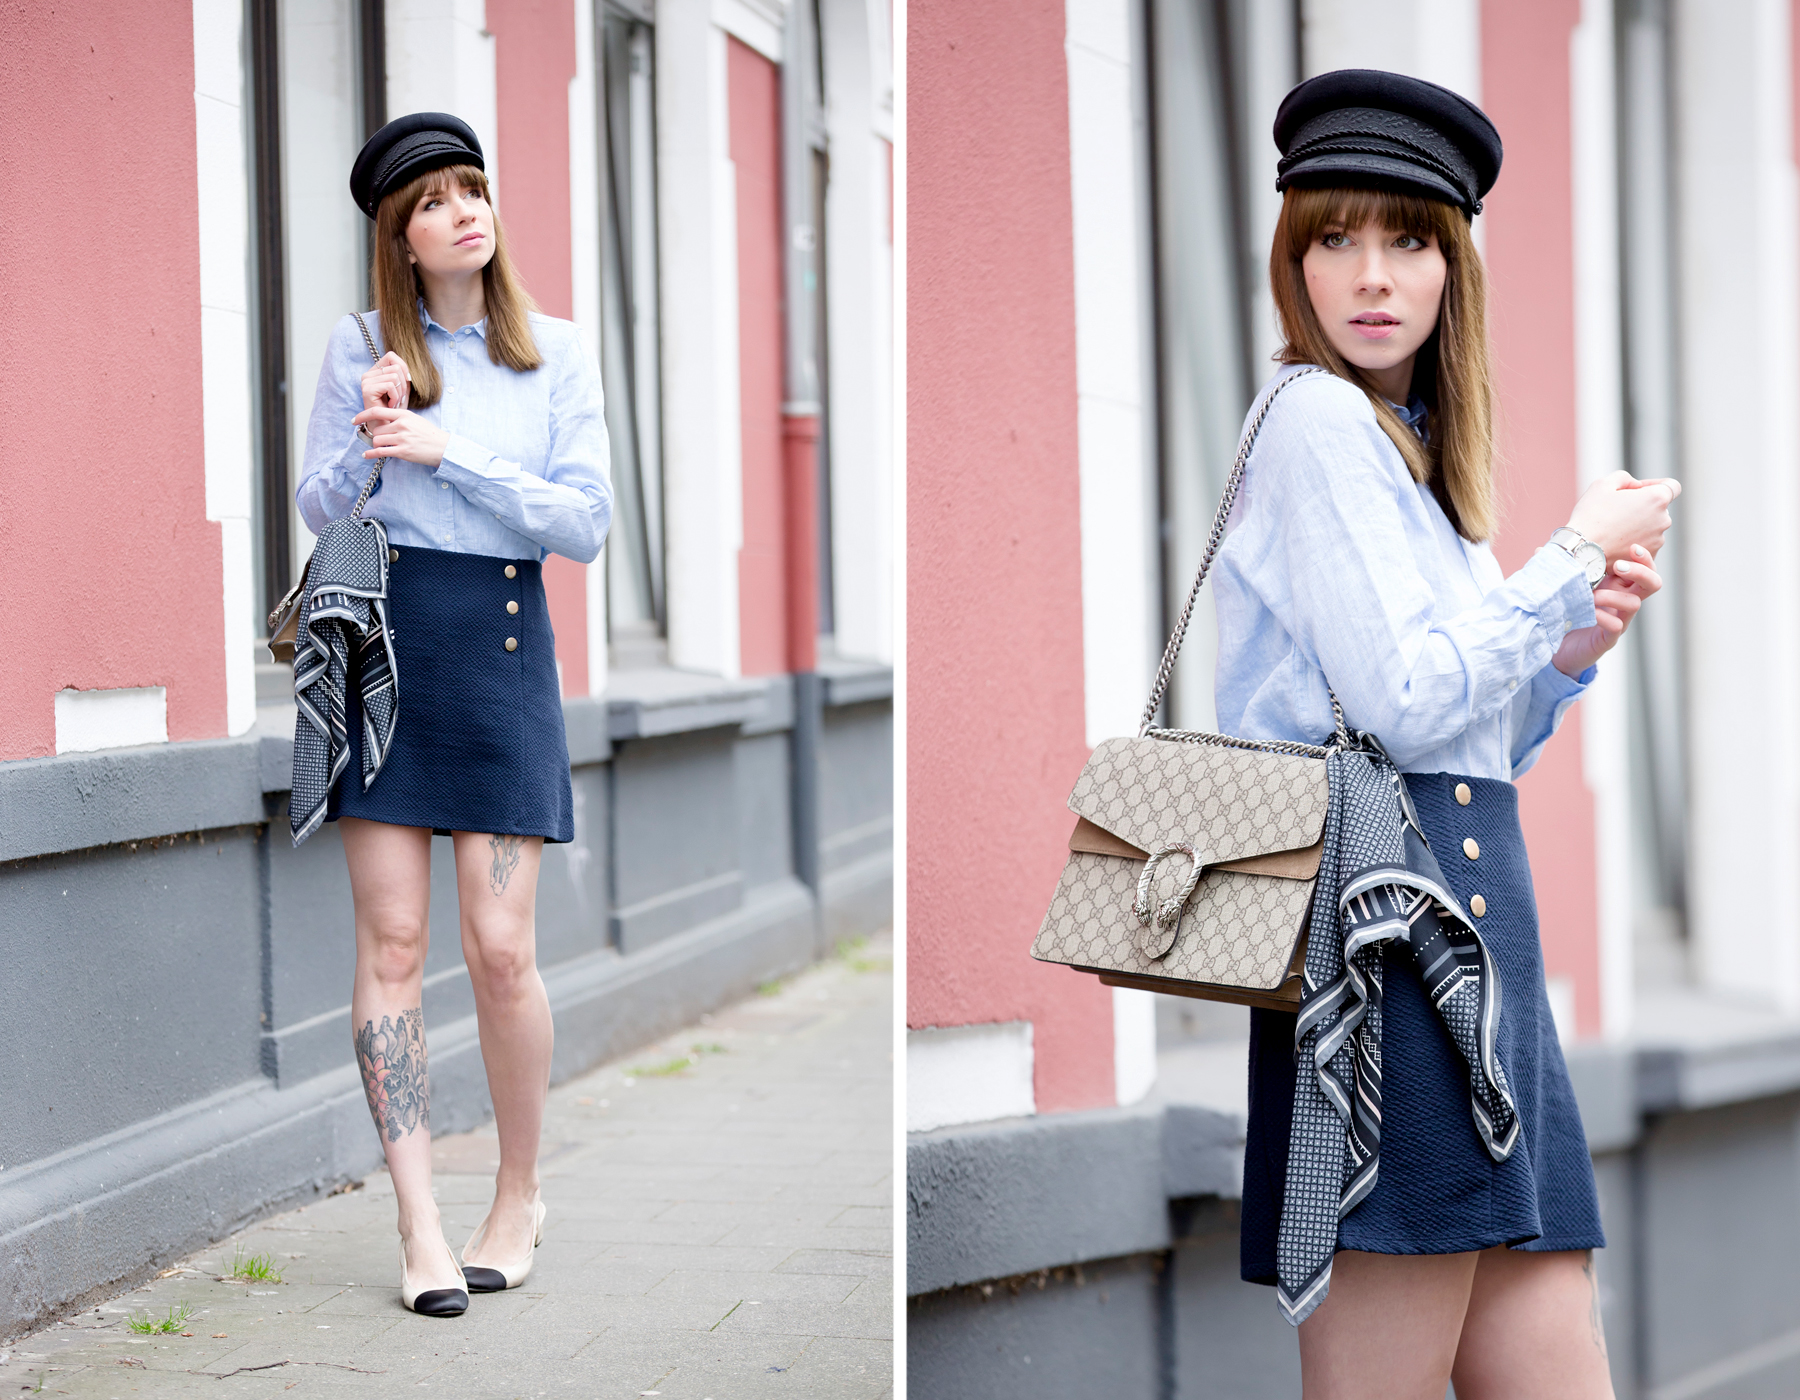 sailor blue french parisienne outfit gucci dionysus chanel luxury fashion blogger modeblogger deutschland hat cute bangs brunette ootd outfit look lookbook cats & dogs ricarda schernus blog 6